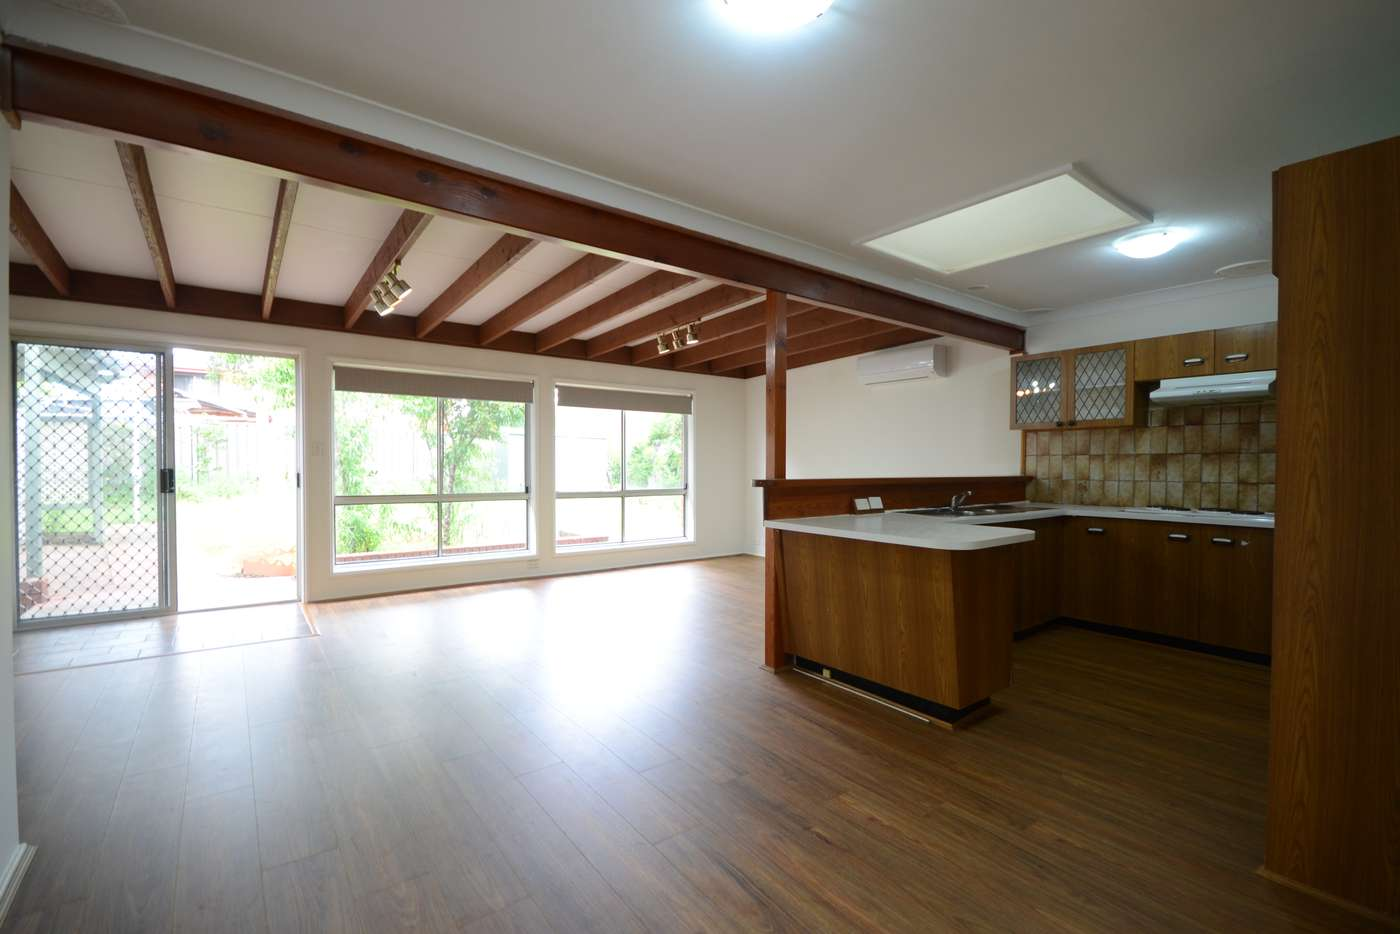 Sixth view of Homely house listing, 846 Merrylands Road, Greystanes NSW 2145